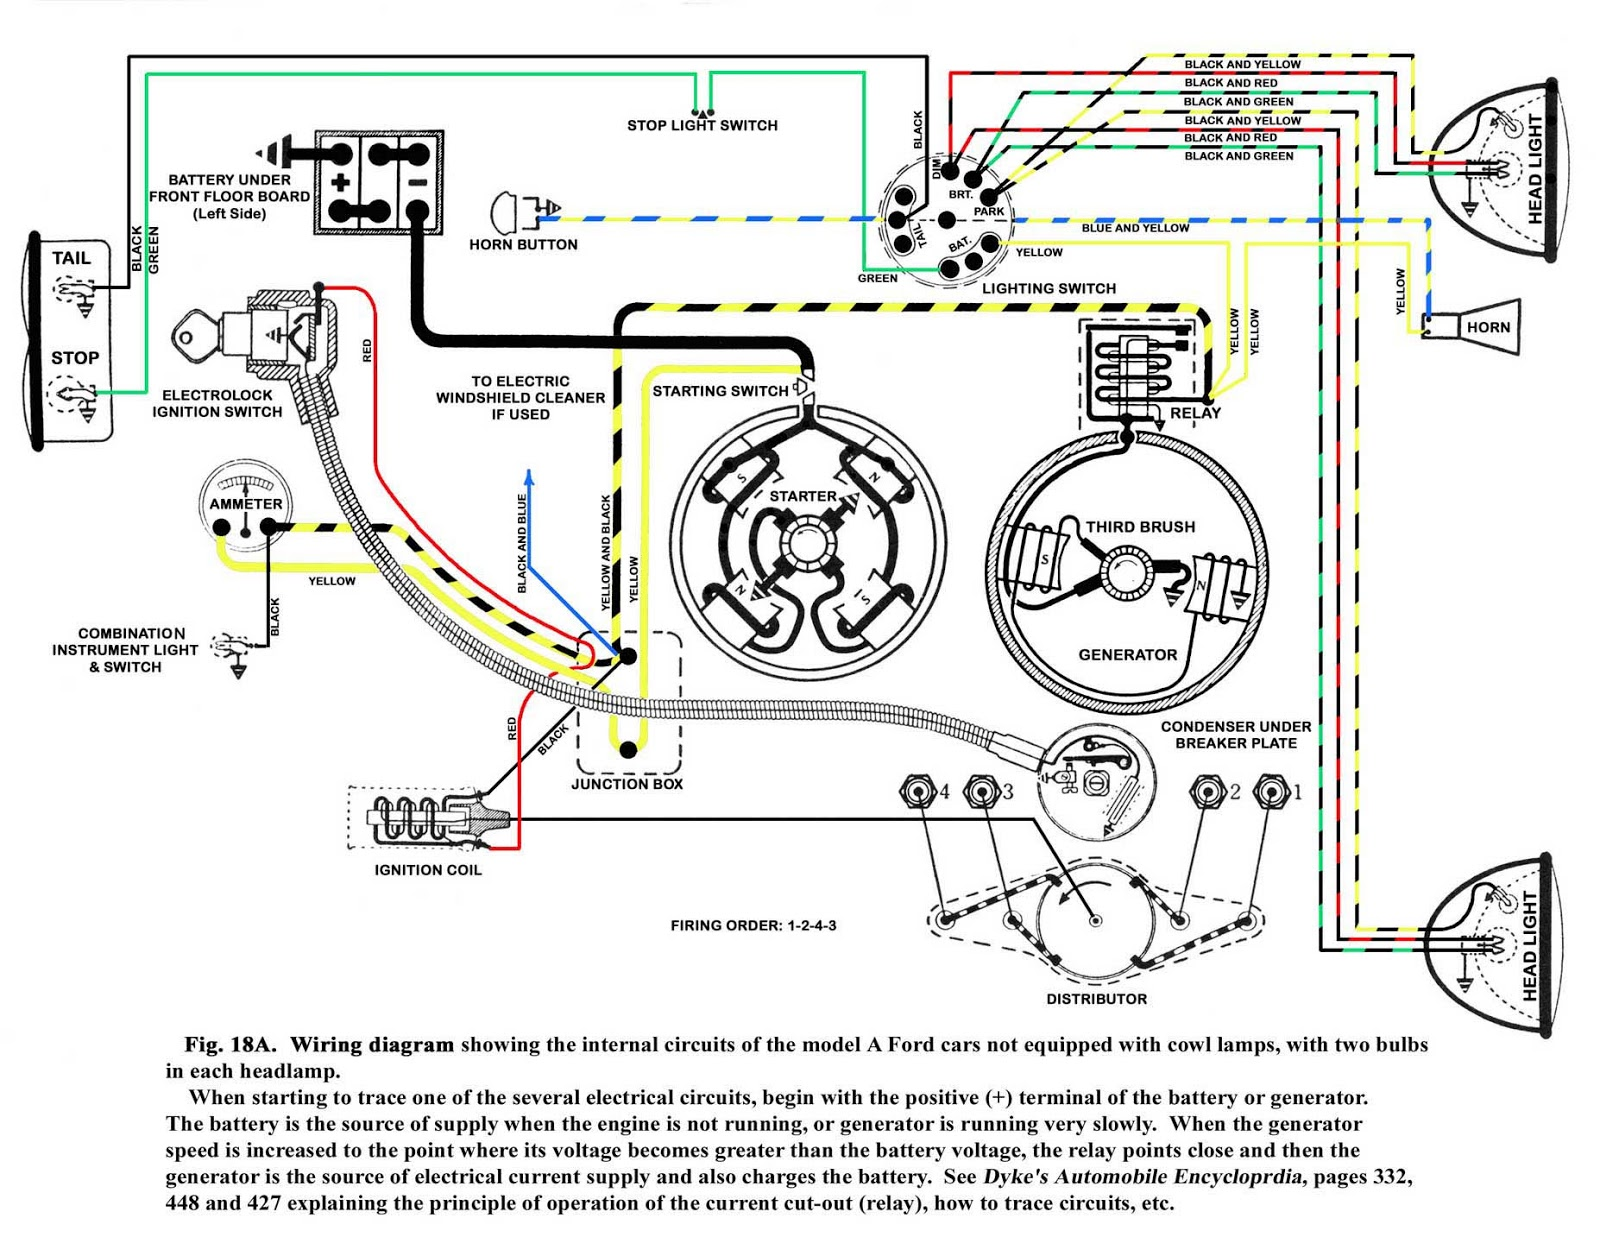 DIAGRAM] 1936 Ford Wiring Diagram FULL Version HD Quality Wiring Diagram -  TYPEDIAGRAM.SIGGY2000.DEtypediagram.siggy2000.de